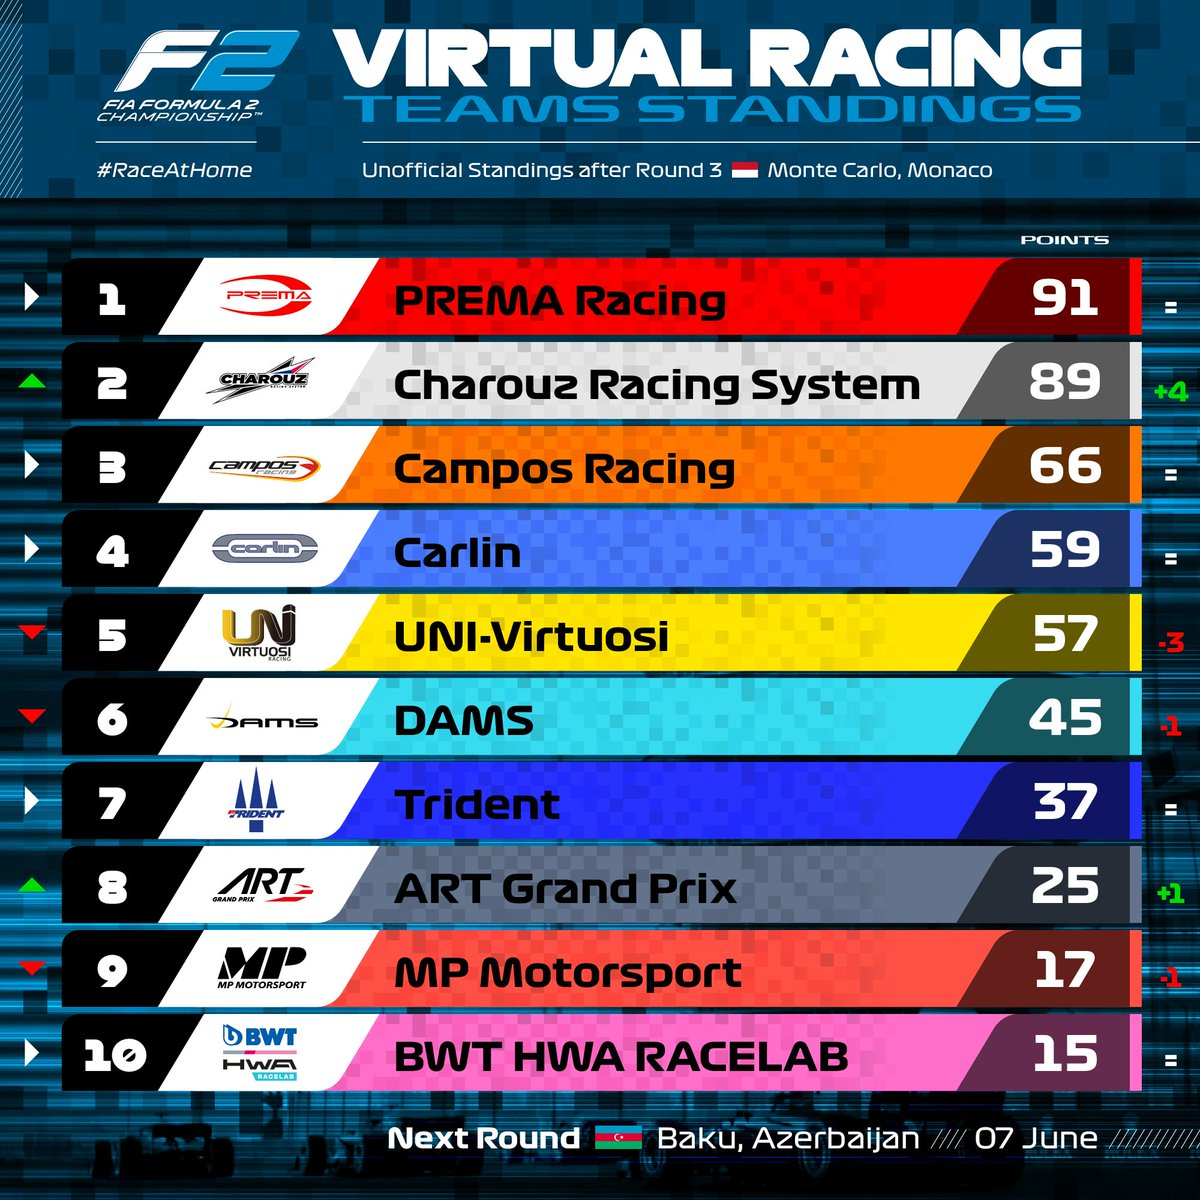 Prema stay on top... but LOOK at Charouz 🚀  Our teams' standings after three rounds of virtual action!  #F2 #RaceAtHome https://t.co/MxhS39XVnZ